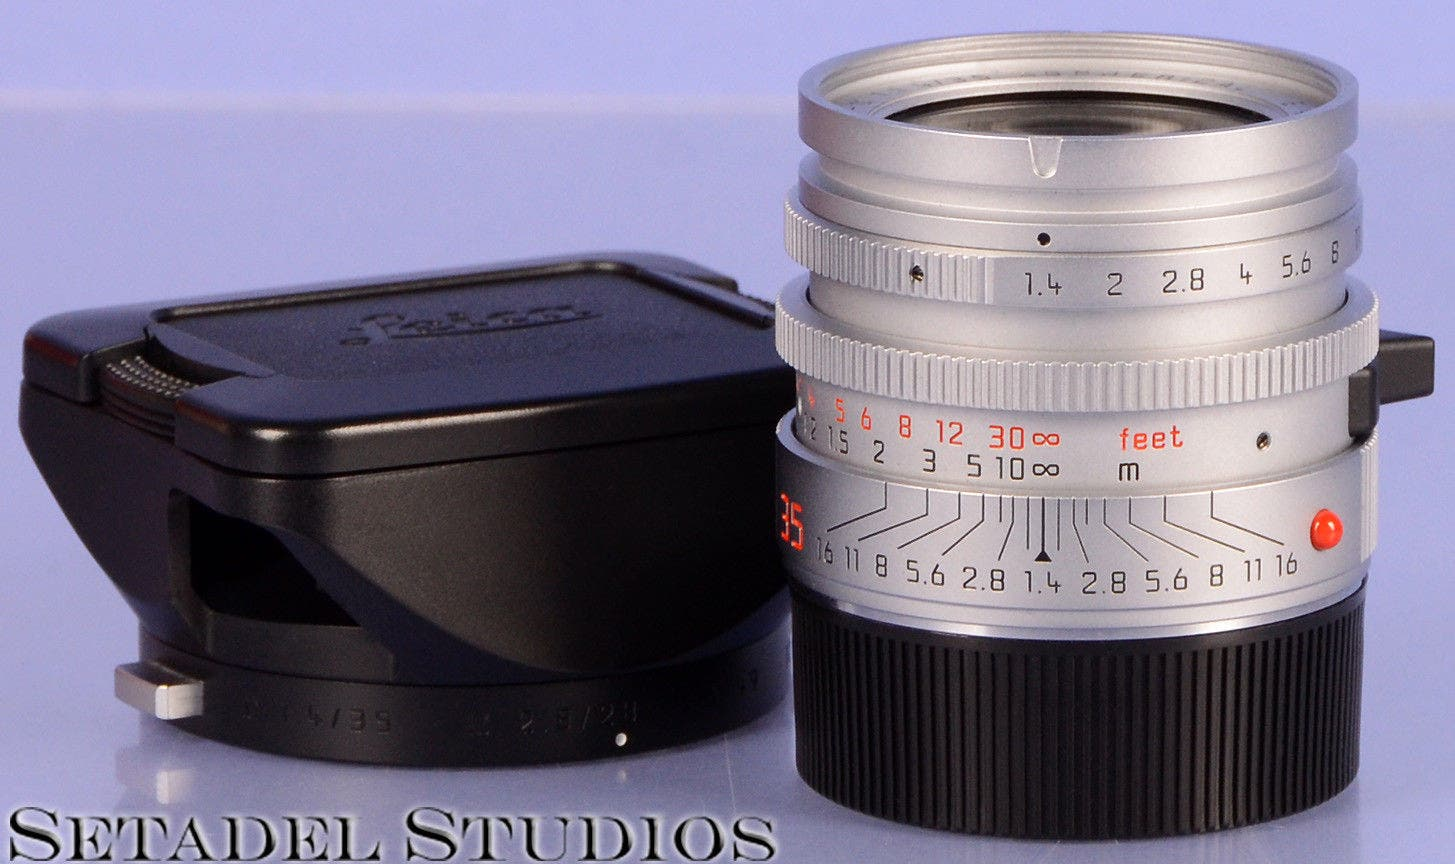 This $750,000 Leica 35mm F1.4 Summilux-M AA Prototype Is Still Up for Grabs